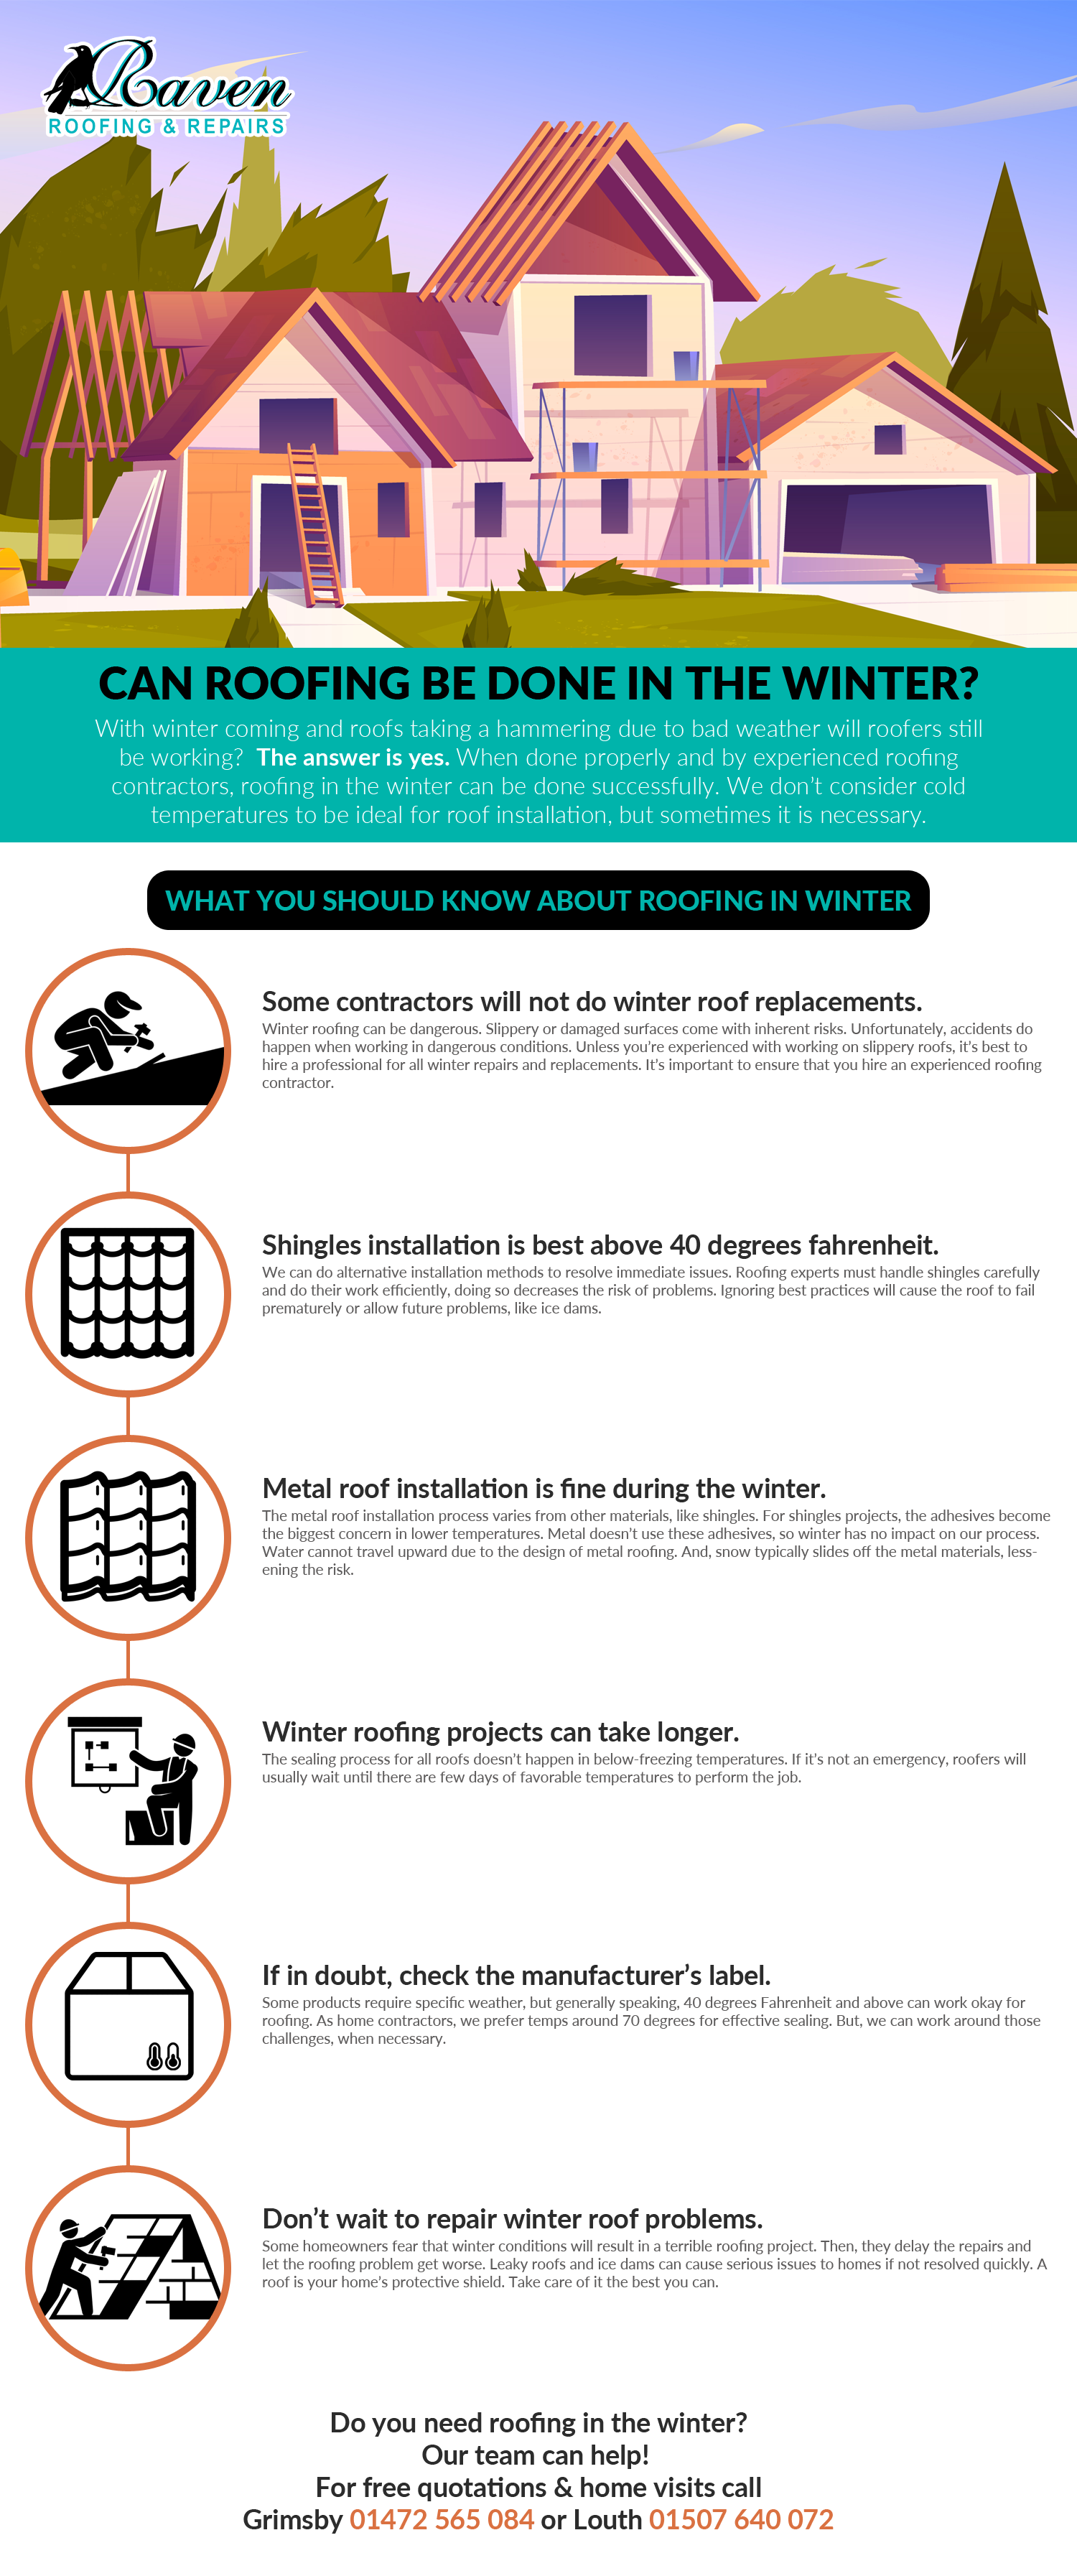 Can roofing be done in the winter [infographic]